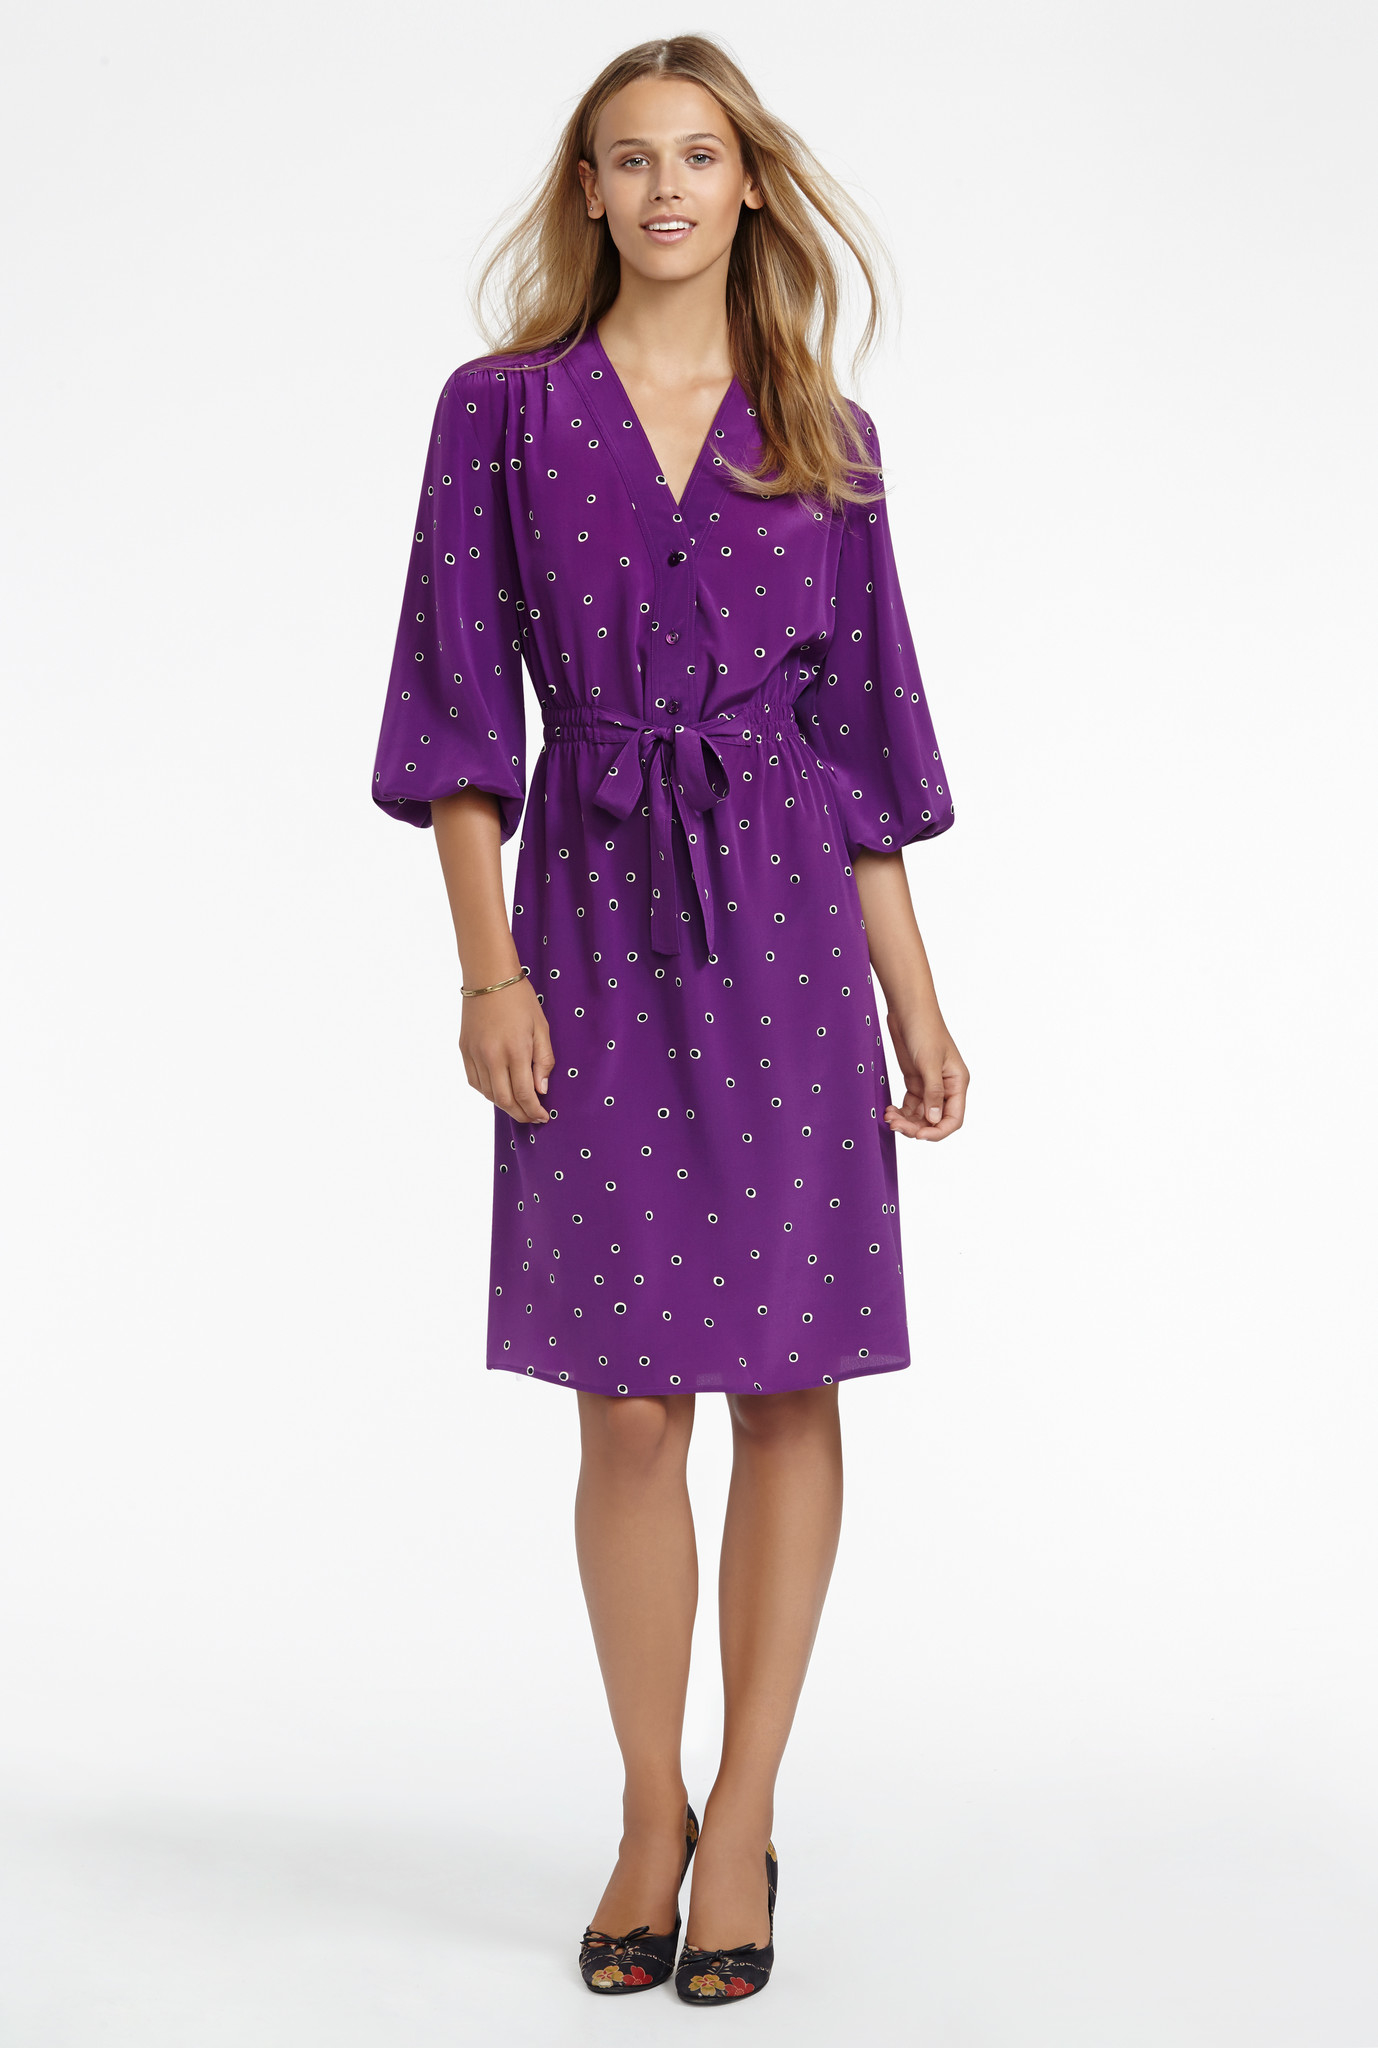 Lo lo lord and taylor party dresses - Gallery Women S Party Dresses